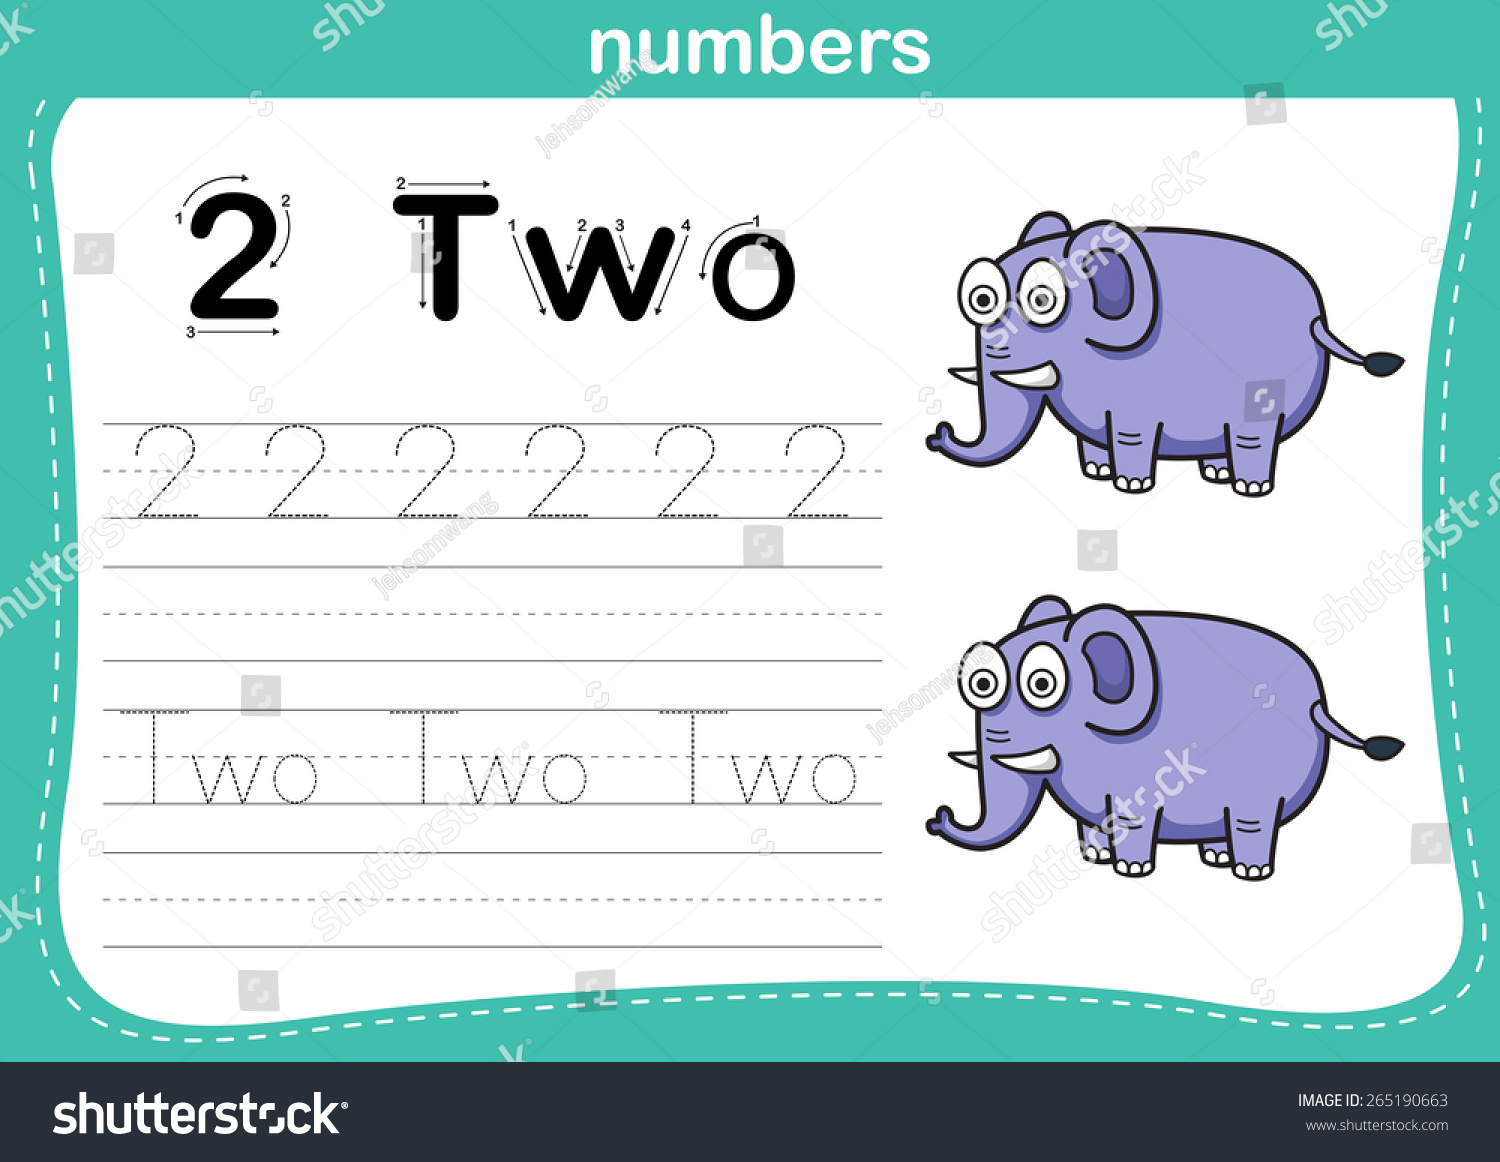 Connecting Dot Printable Numbers Exercise Lovely Stock